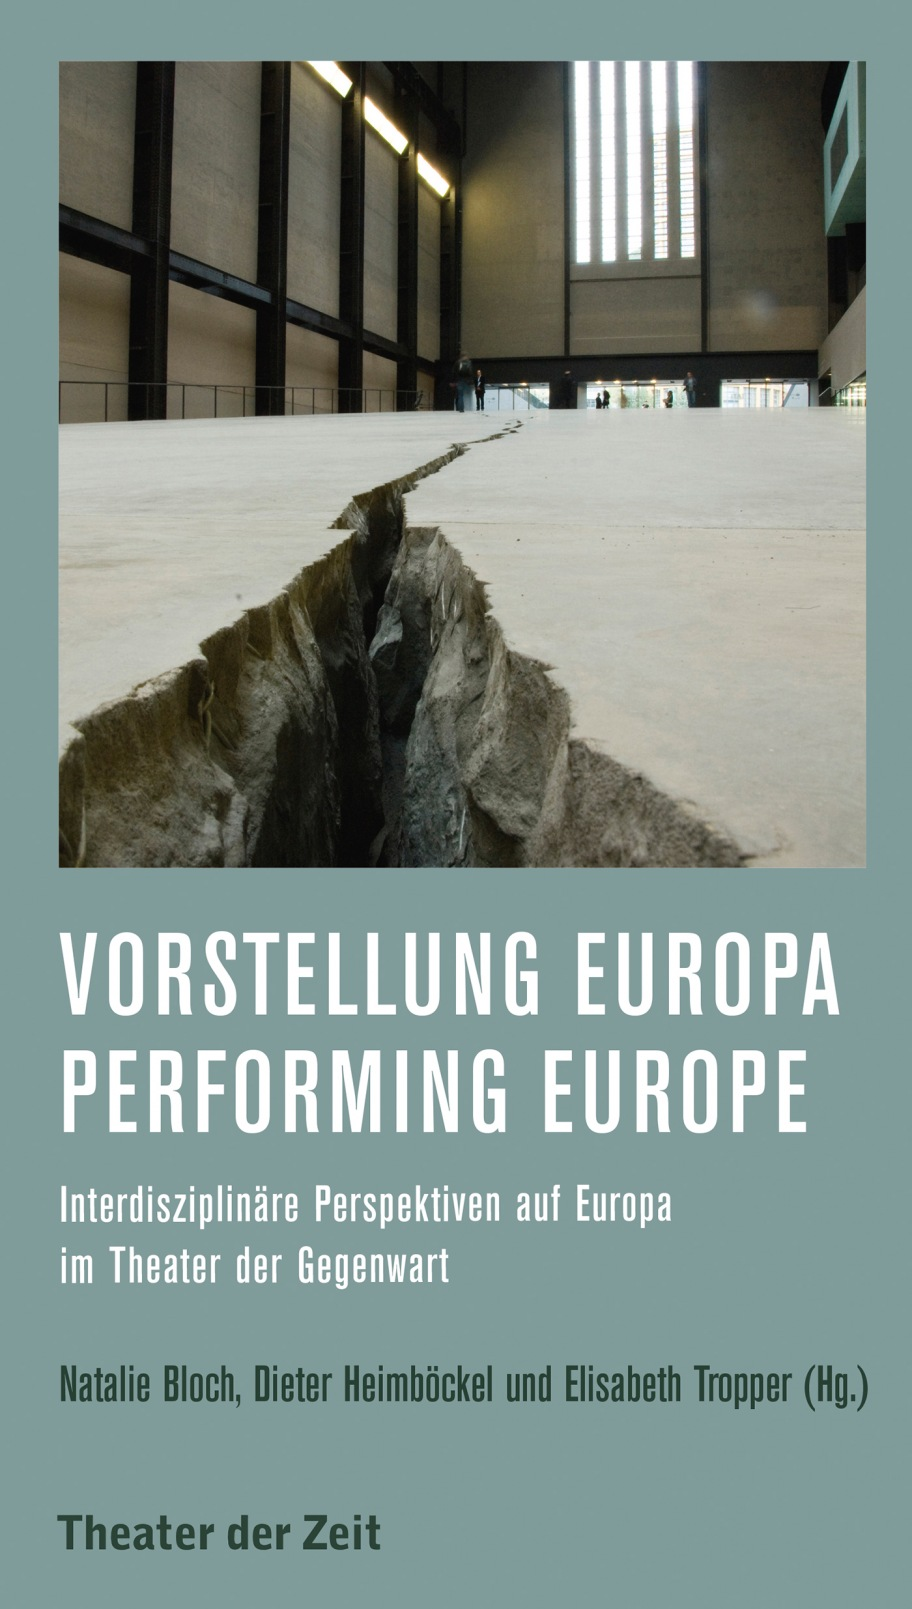 Vorstellung Europa – Performing Europe